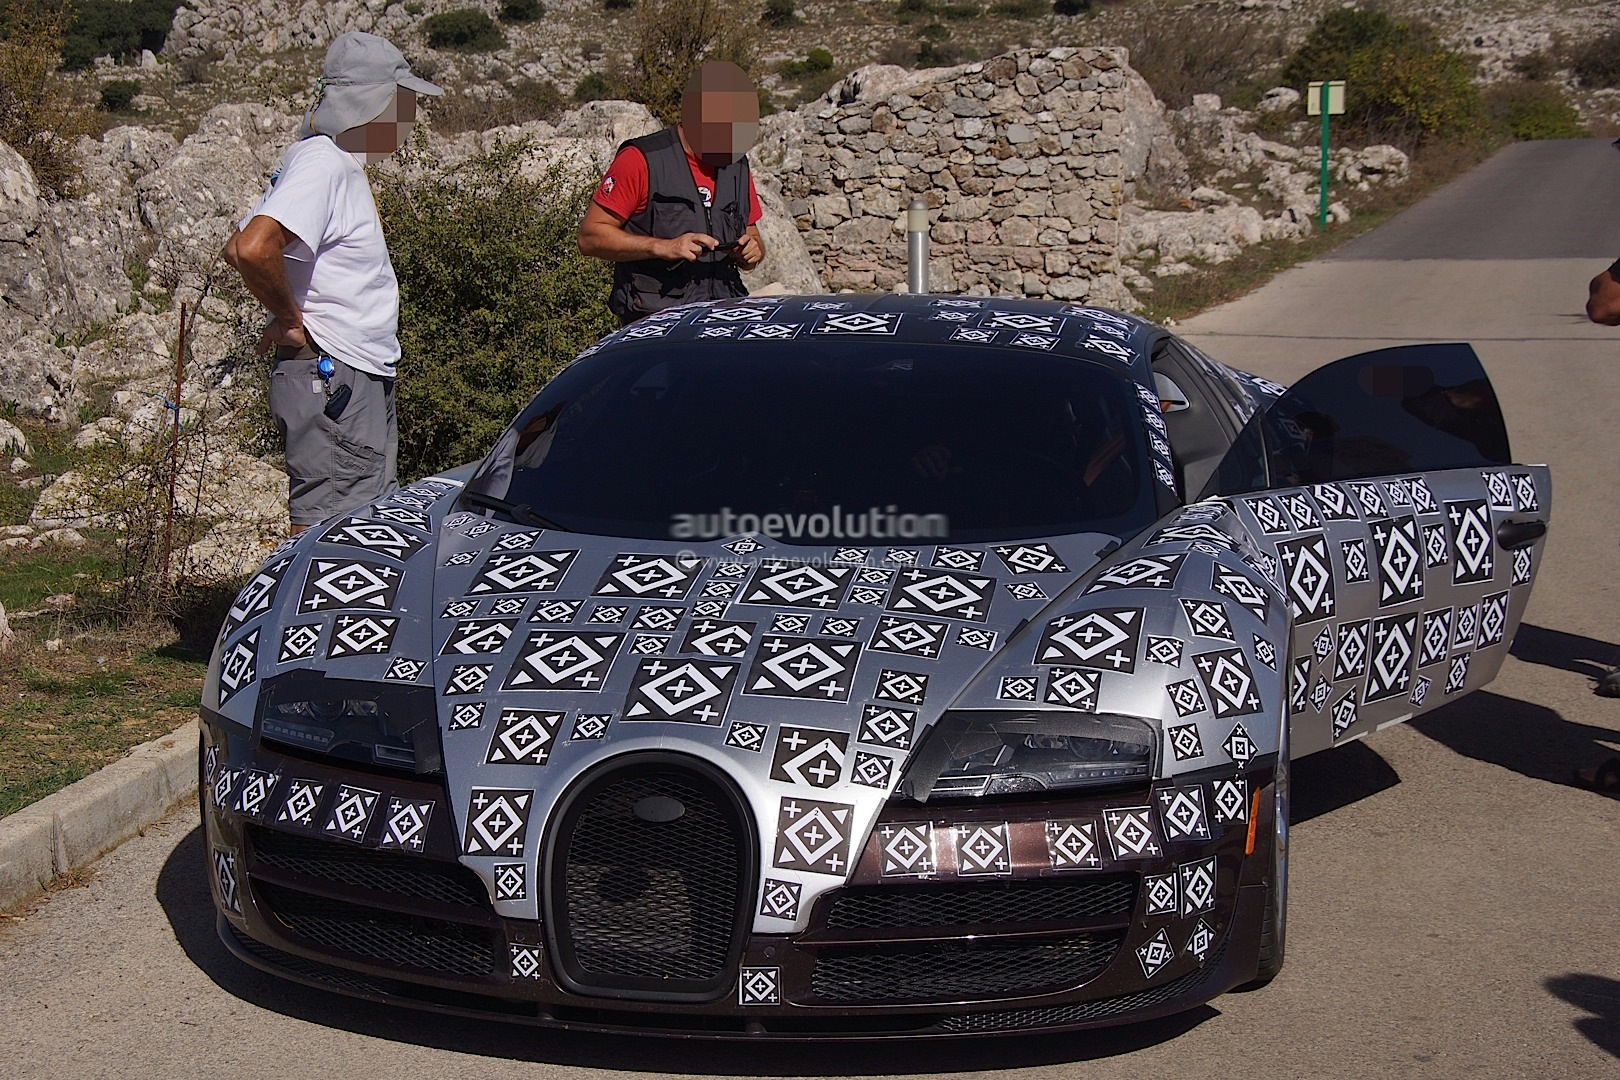 mini cooper s jcw kit with Bugatti Veyron Successor Chiron Spied Testing Hybrid Power 88889 on 2010 Mini Clubman S With Jcw Tuning Kit topic9851 additionally 16643906167 also Watch as well First All New Mini Clubman Review Says It S  fortable Video 100497 in addition 2016.